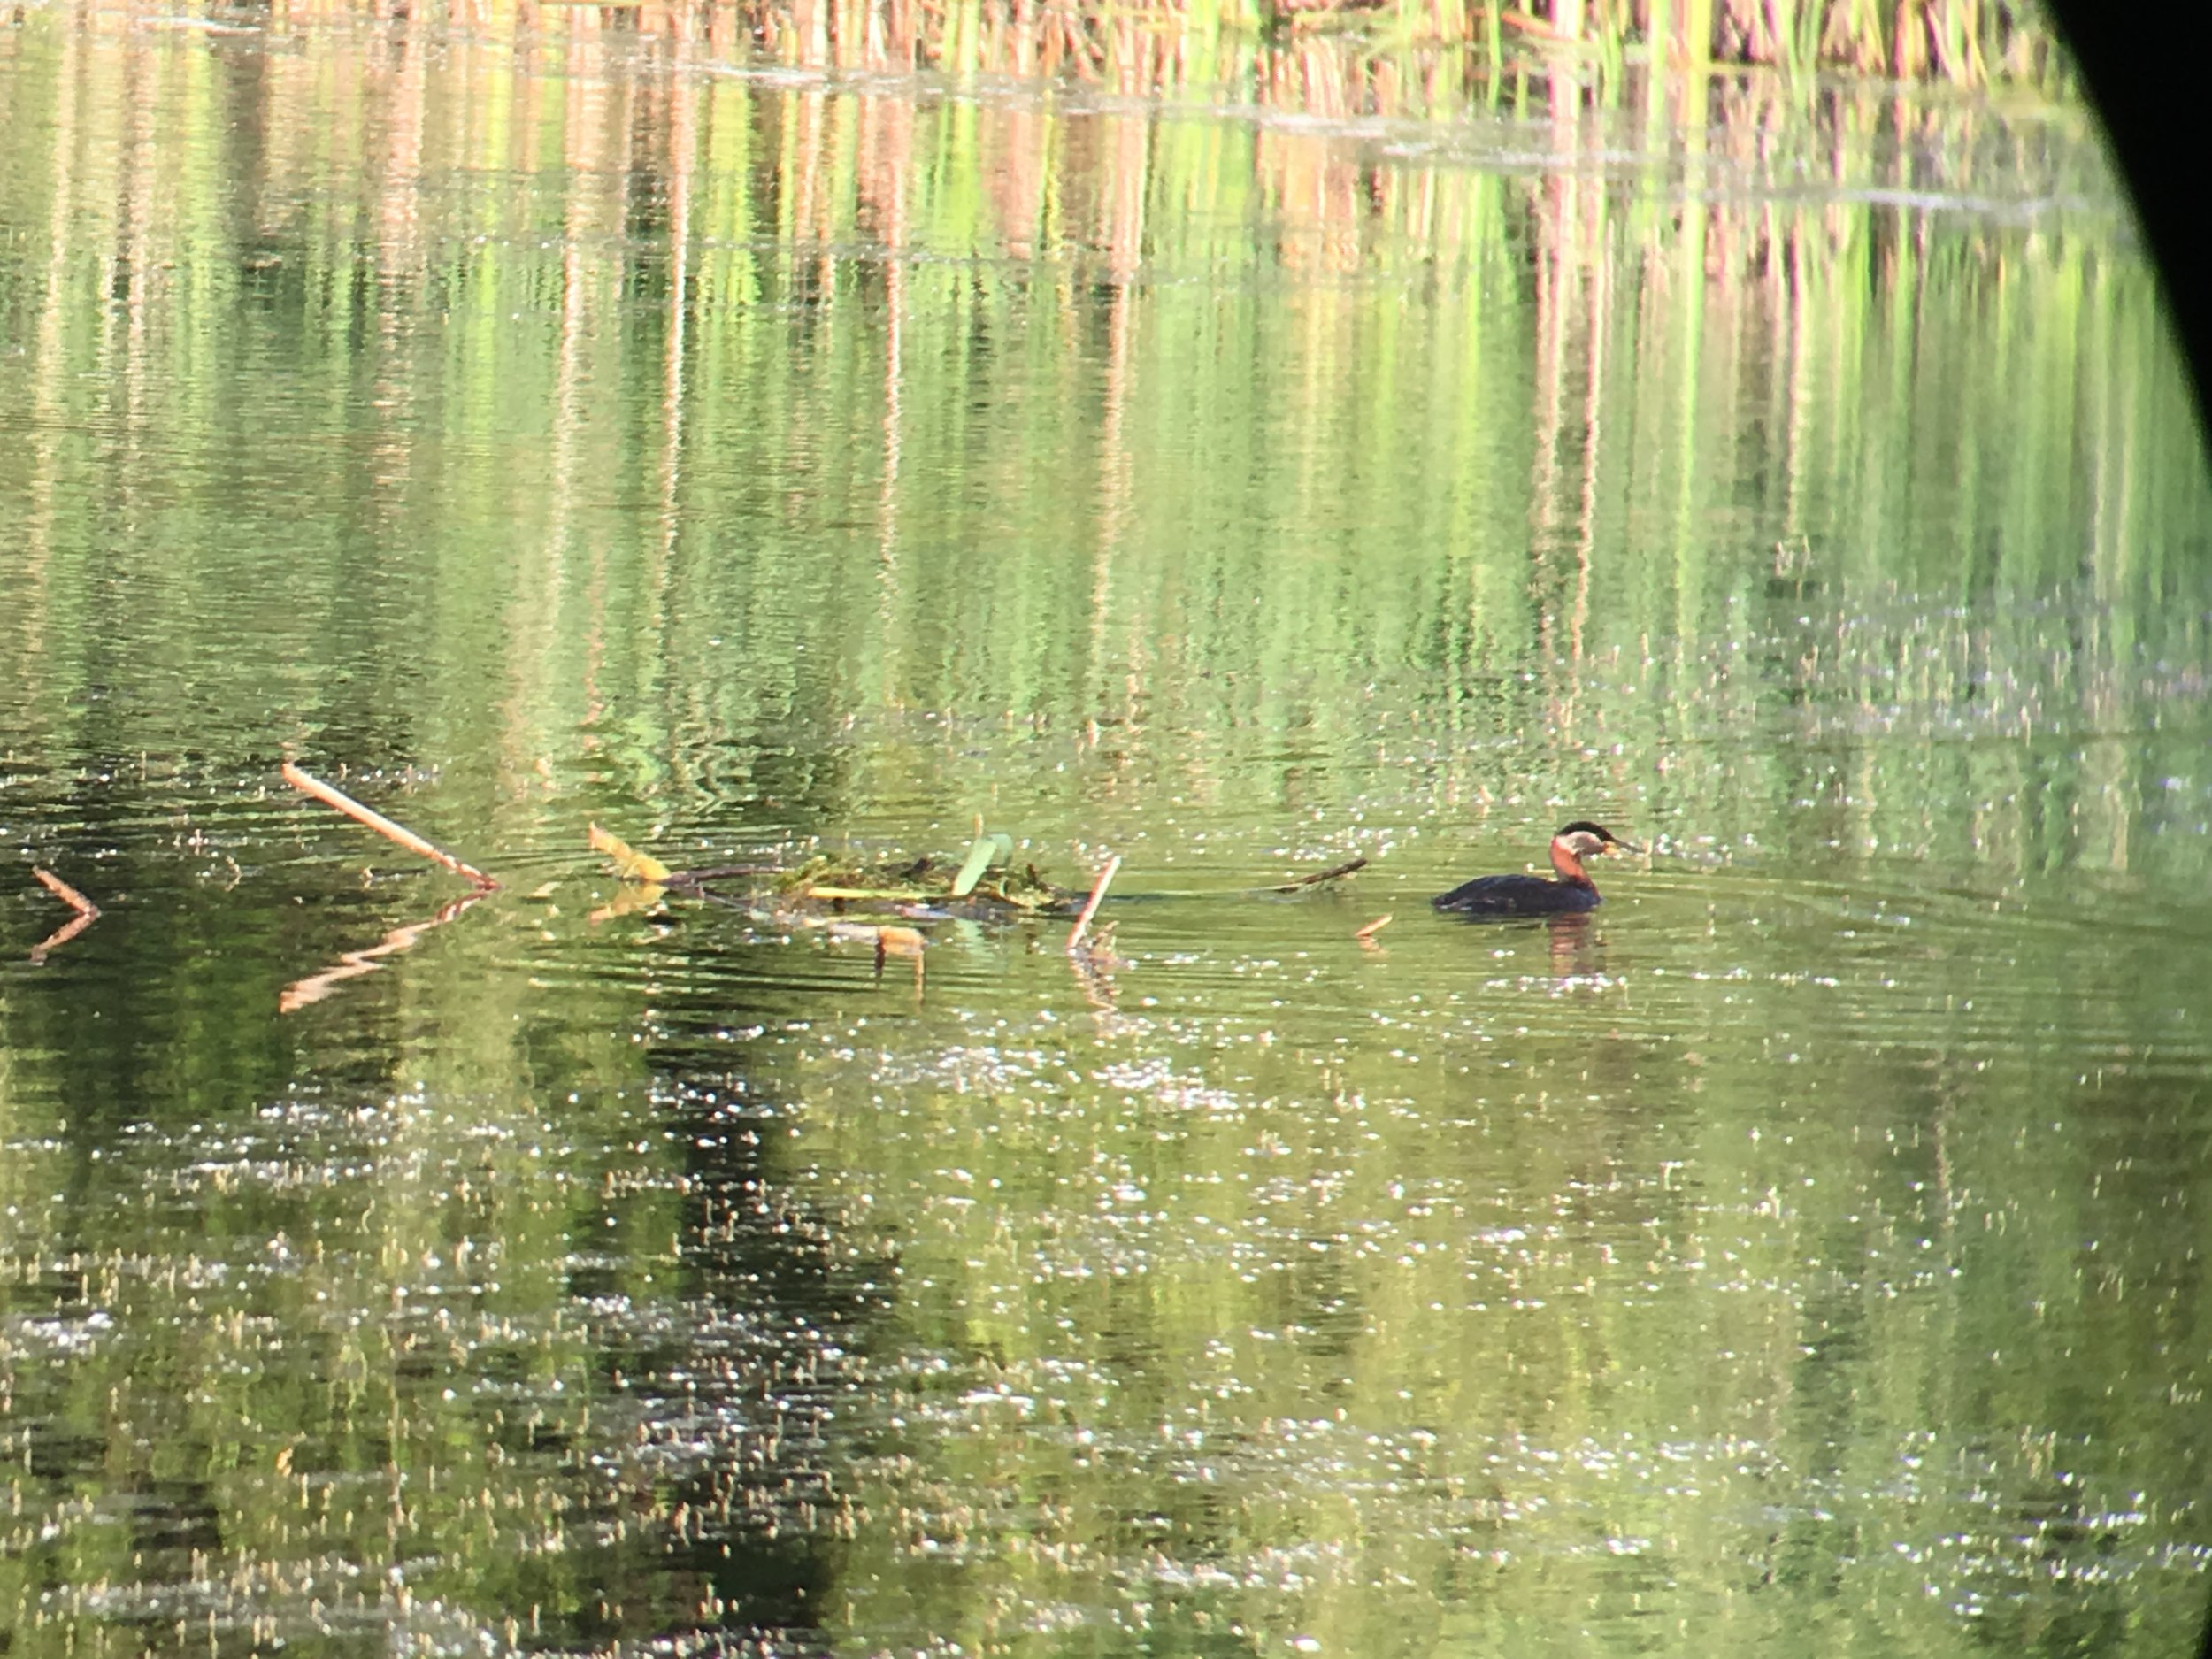 Red Necked Grebe - Eagle's Nest Golf Club - Jun 8/18 - The Red Necked Grebe is only known to nest along the shore of western Lake Erie.